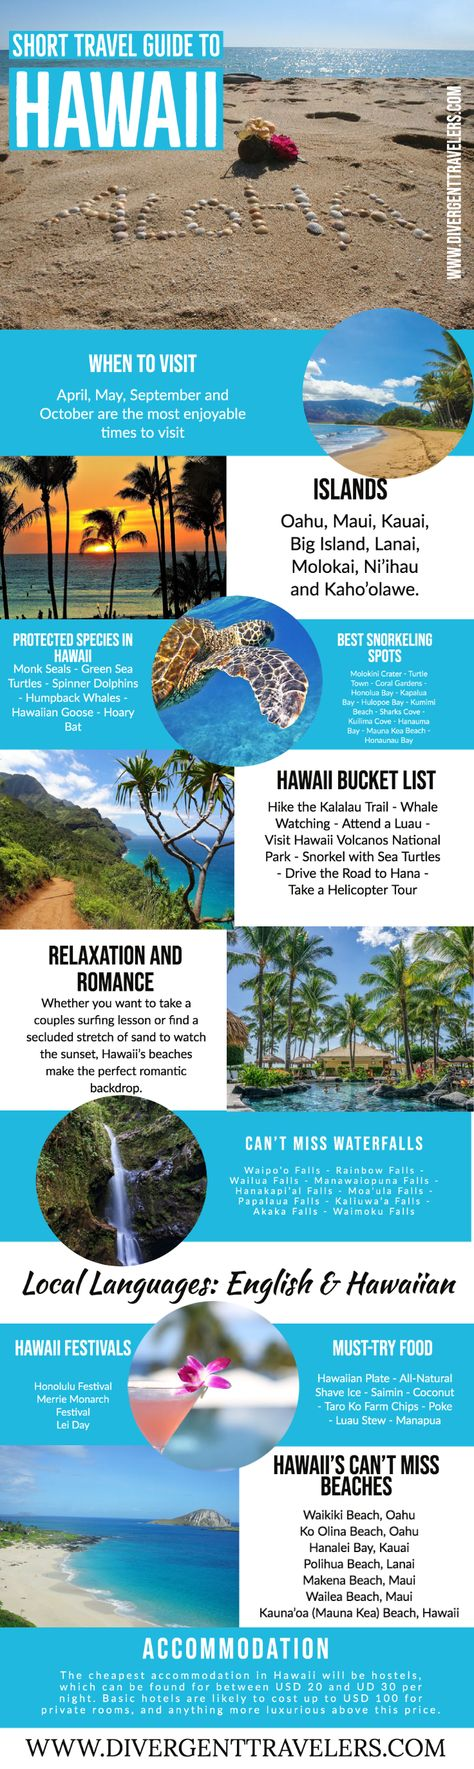 Short Travel Guide To Hawaii